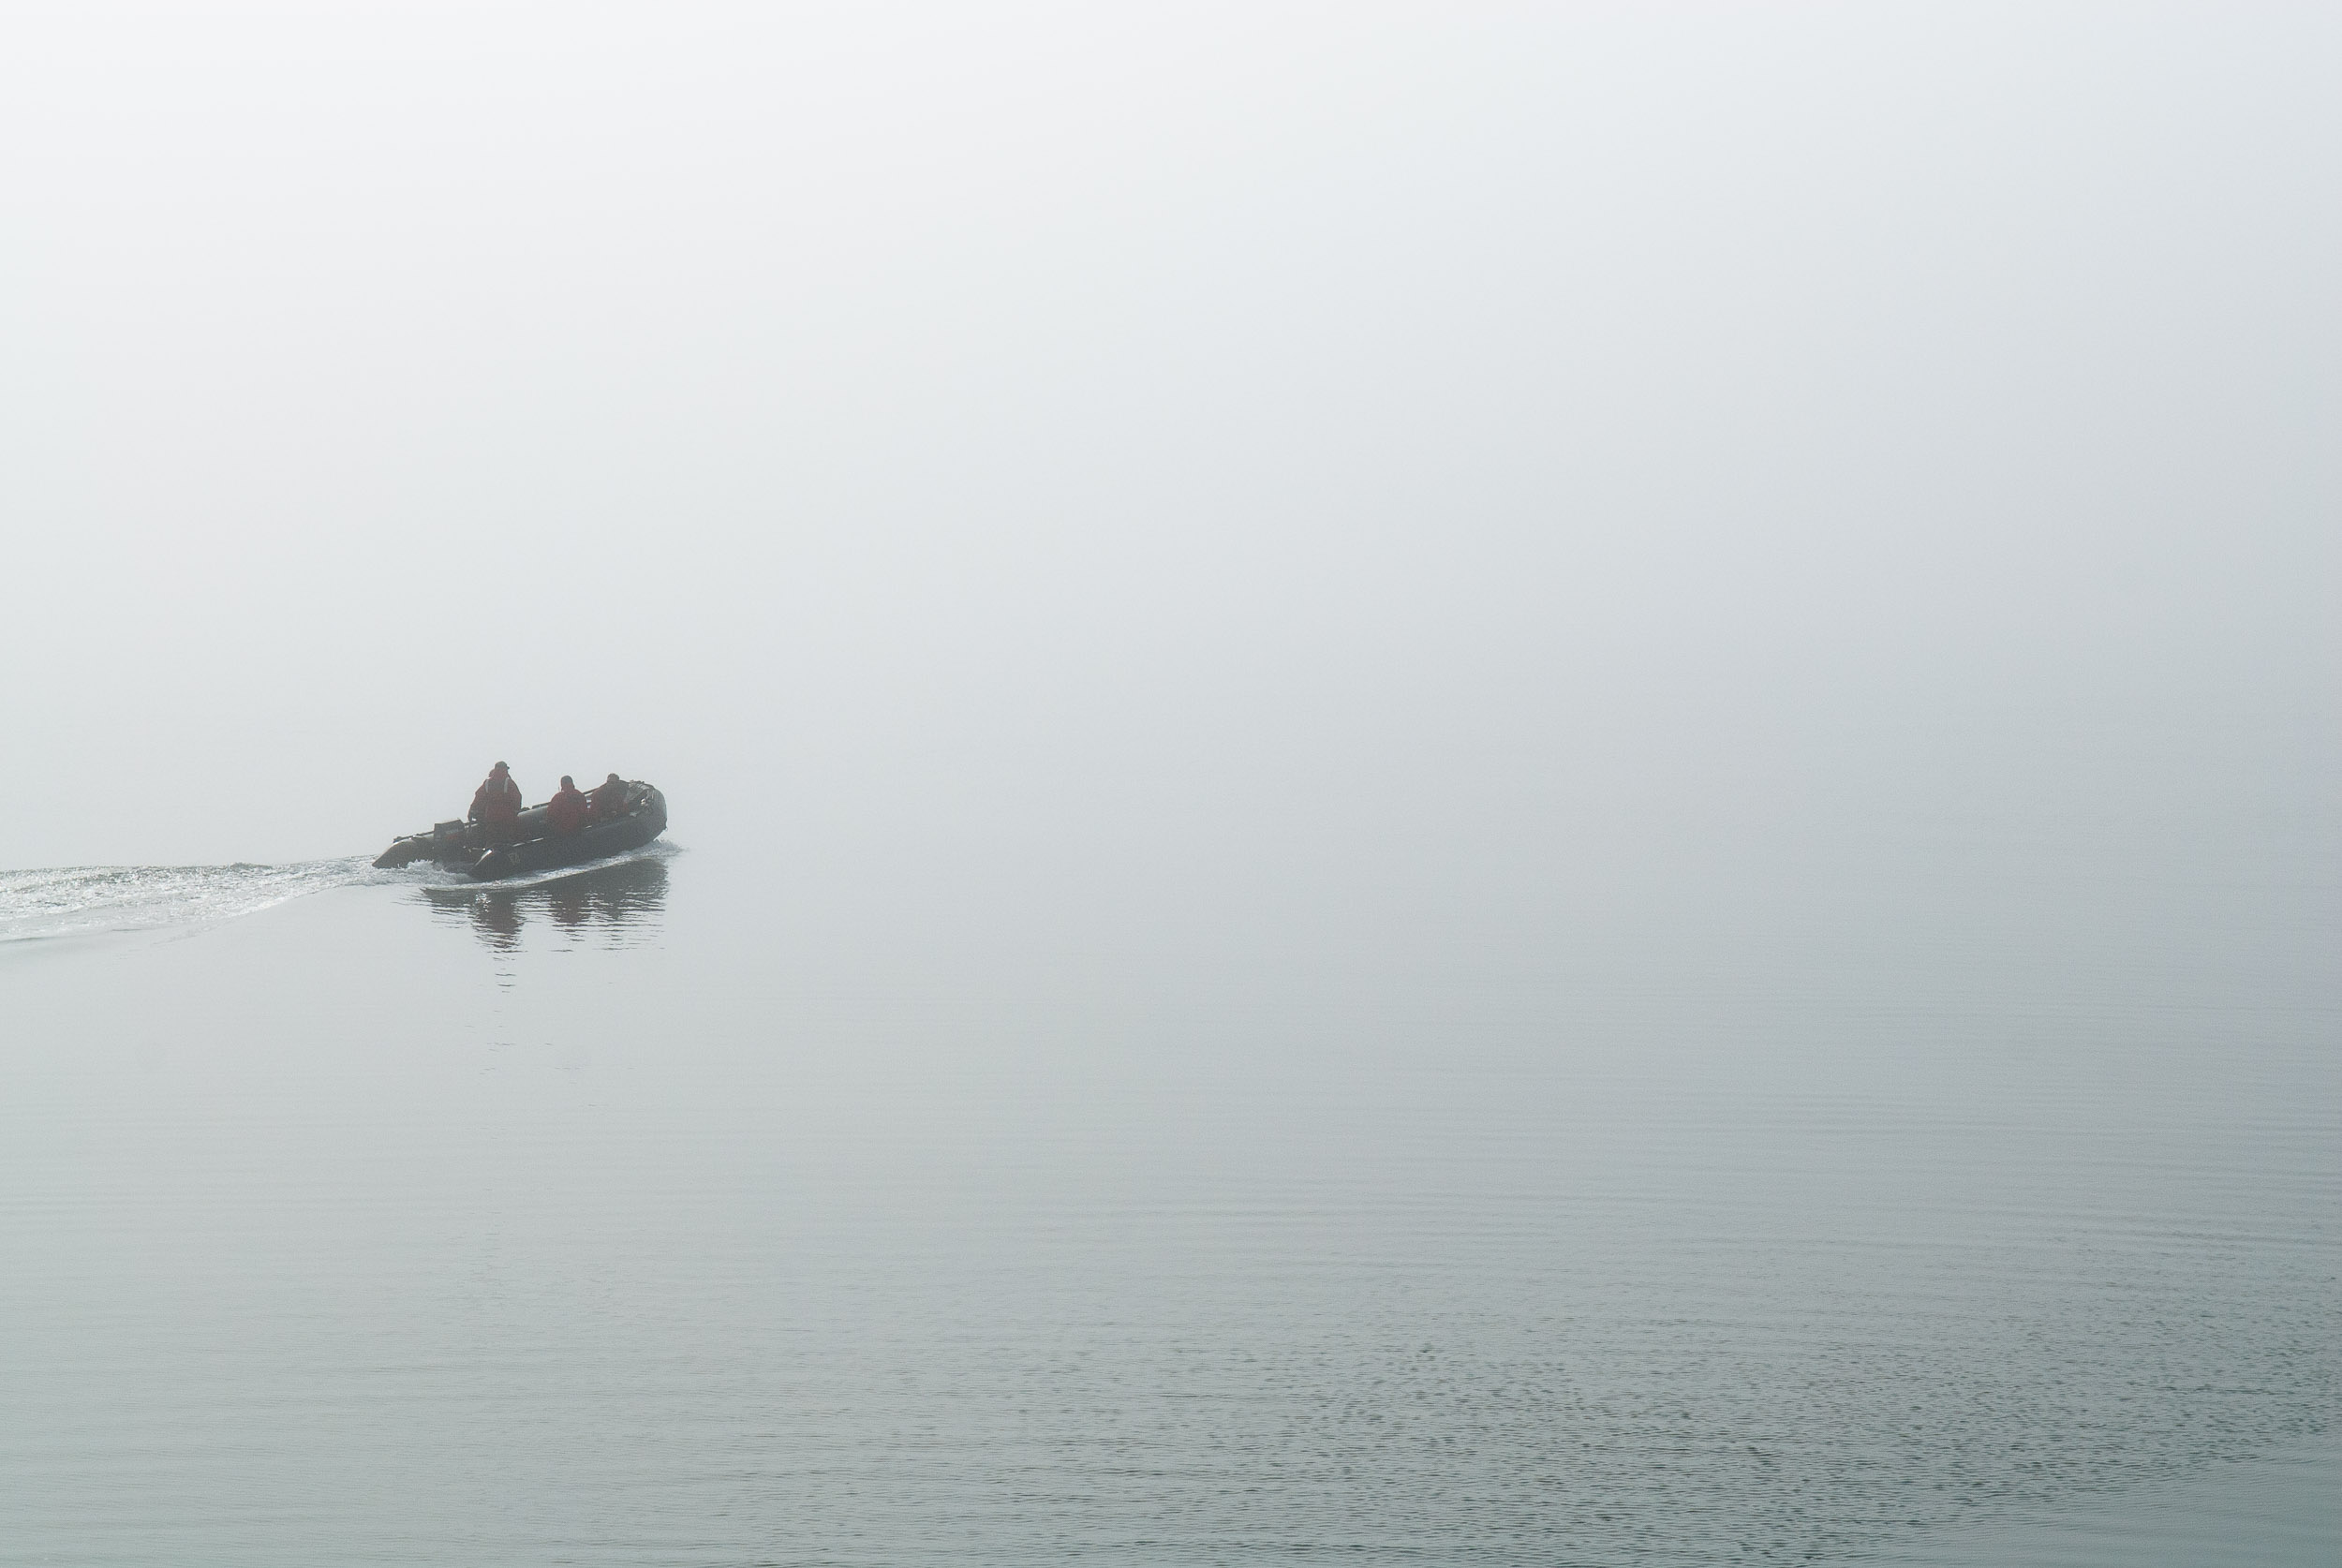 Polar guide driving an inflatable motorized boat, known as a zodiac, in foggy conditions near Diskobukta, Edgeoya, Spitsbergen/Svalbard, Norway.